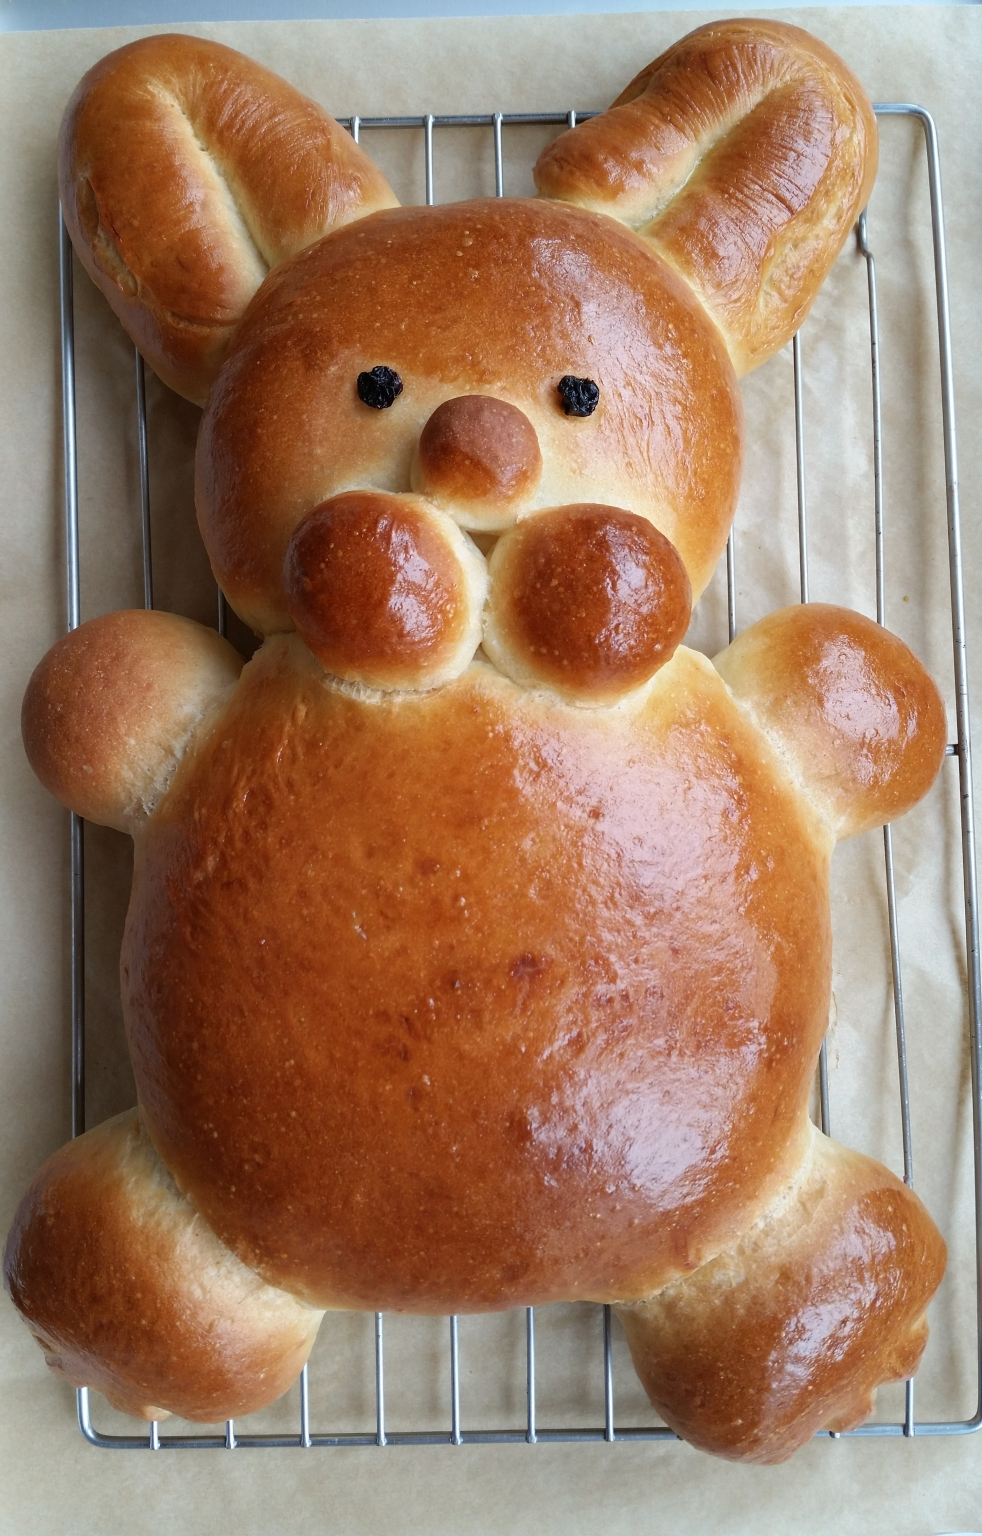 Loaf of Easter Bunny Bread